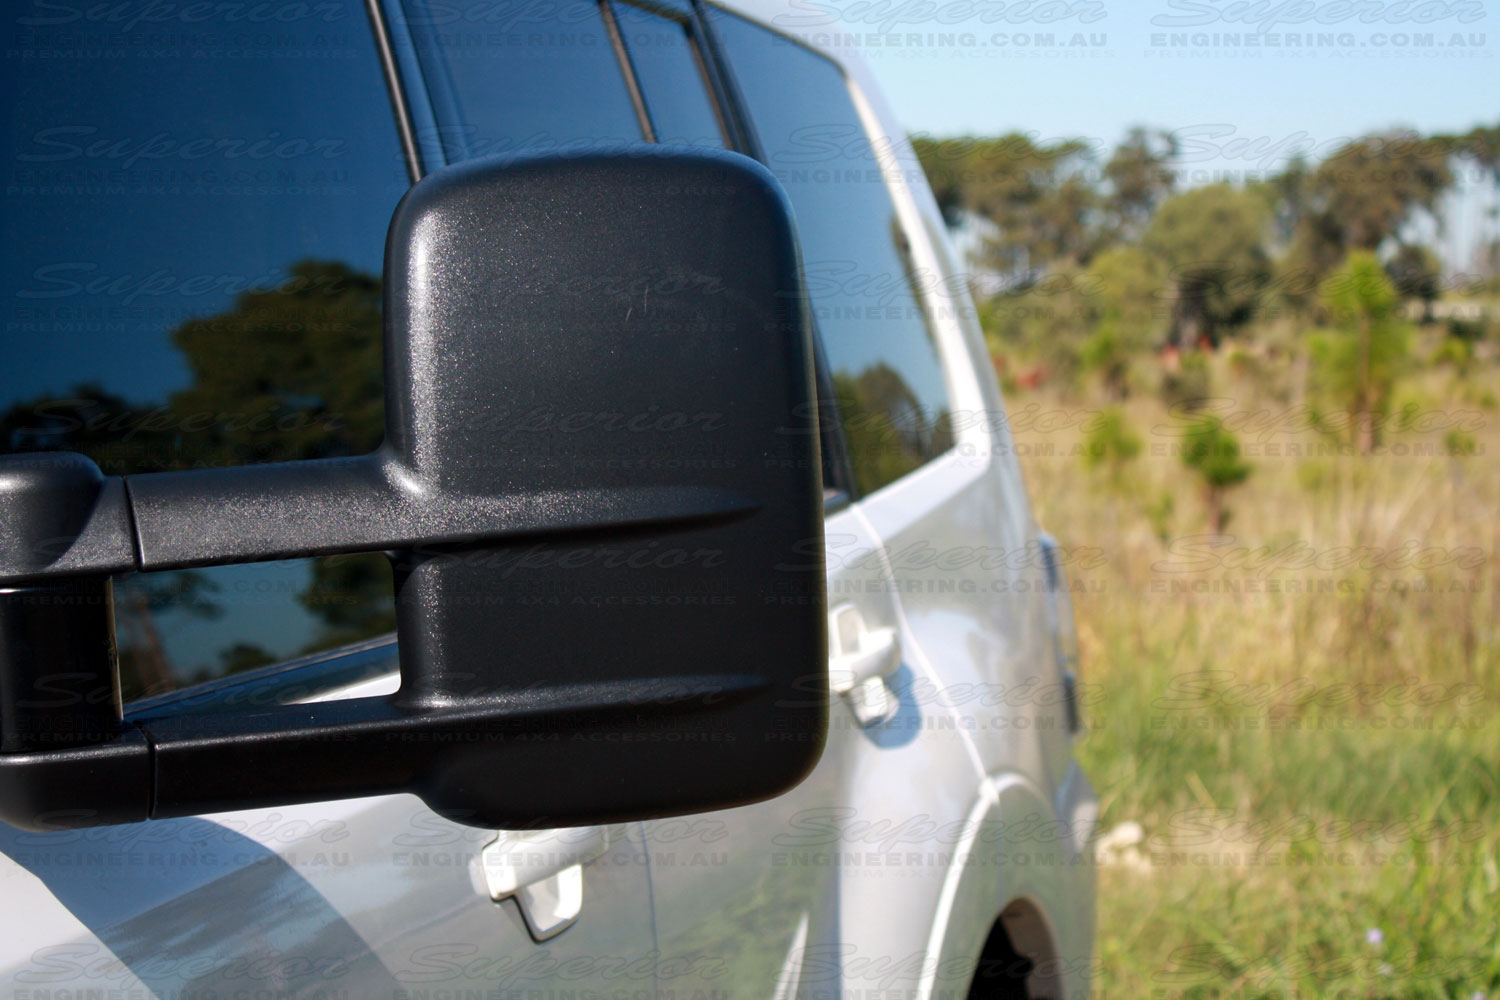 Left front view of a black Mitsubishi Pajero Clearview Towing Mirror